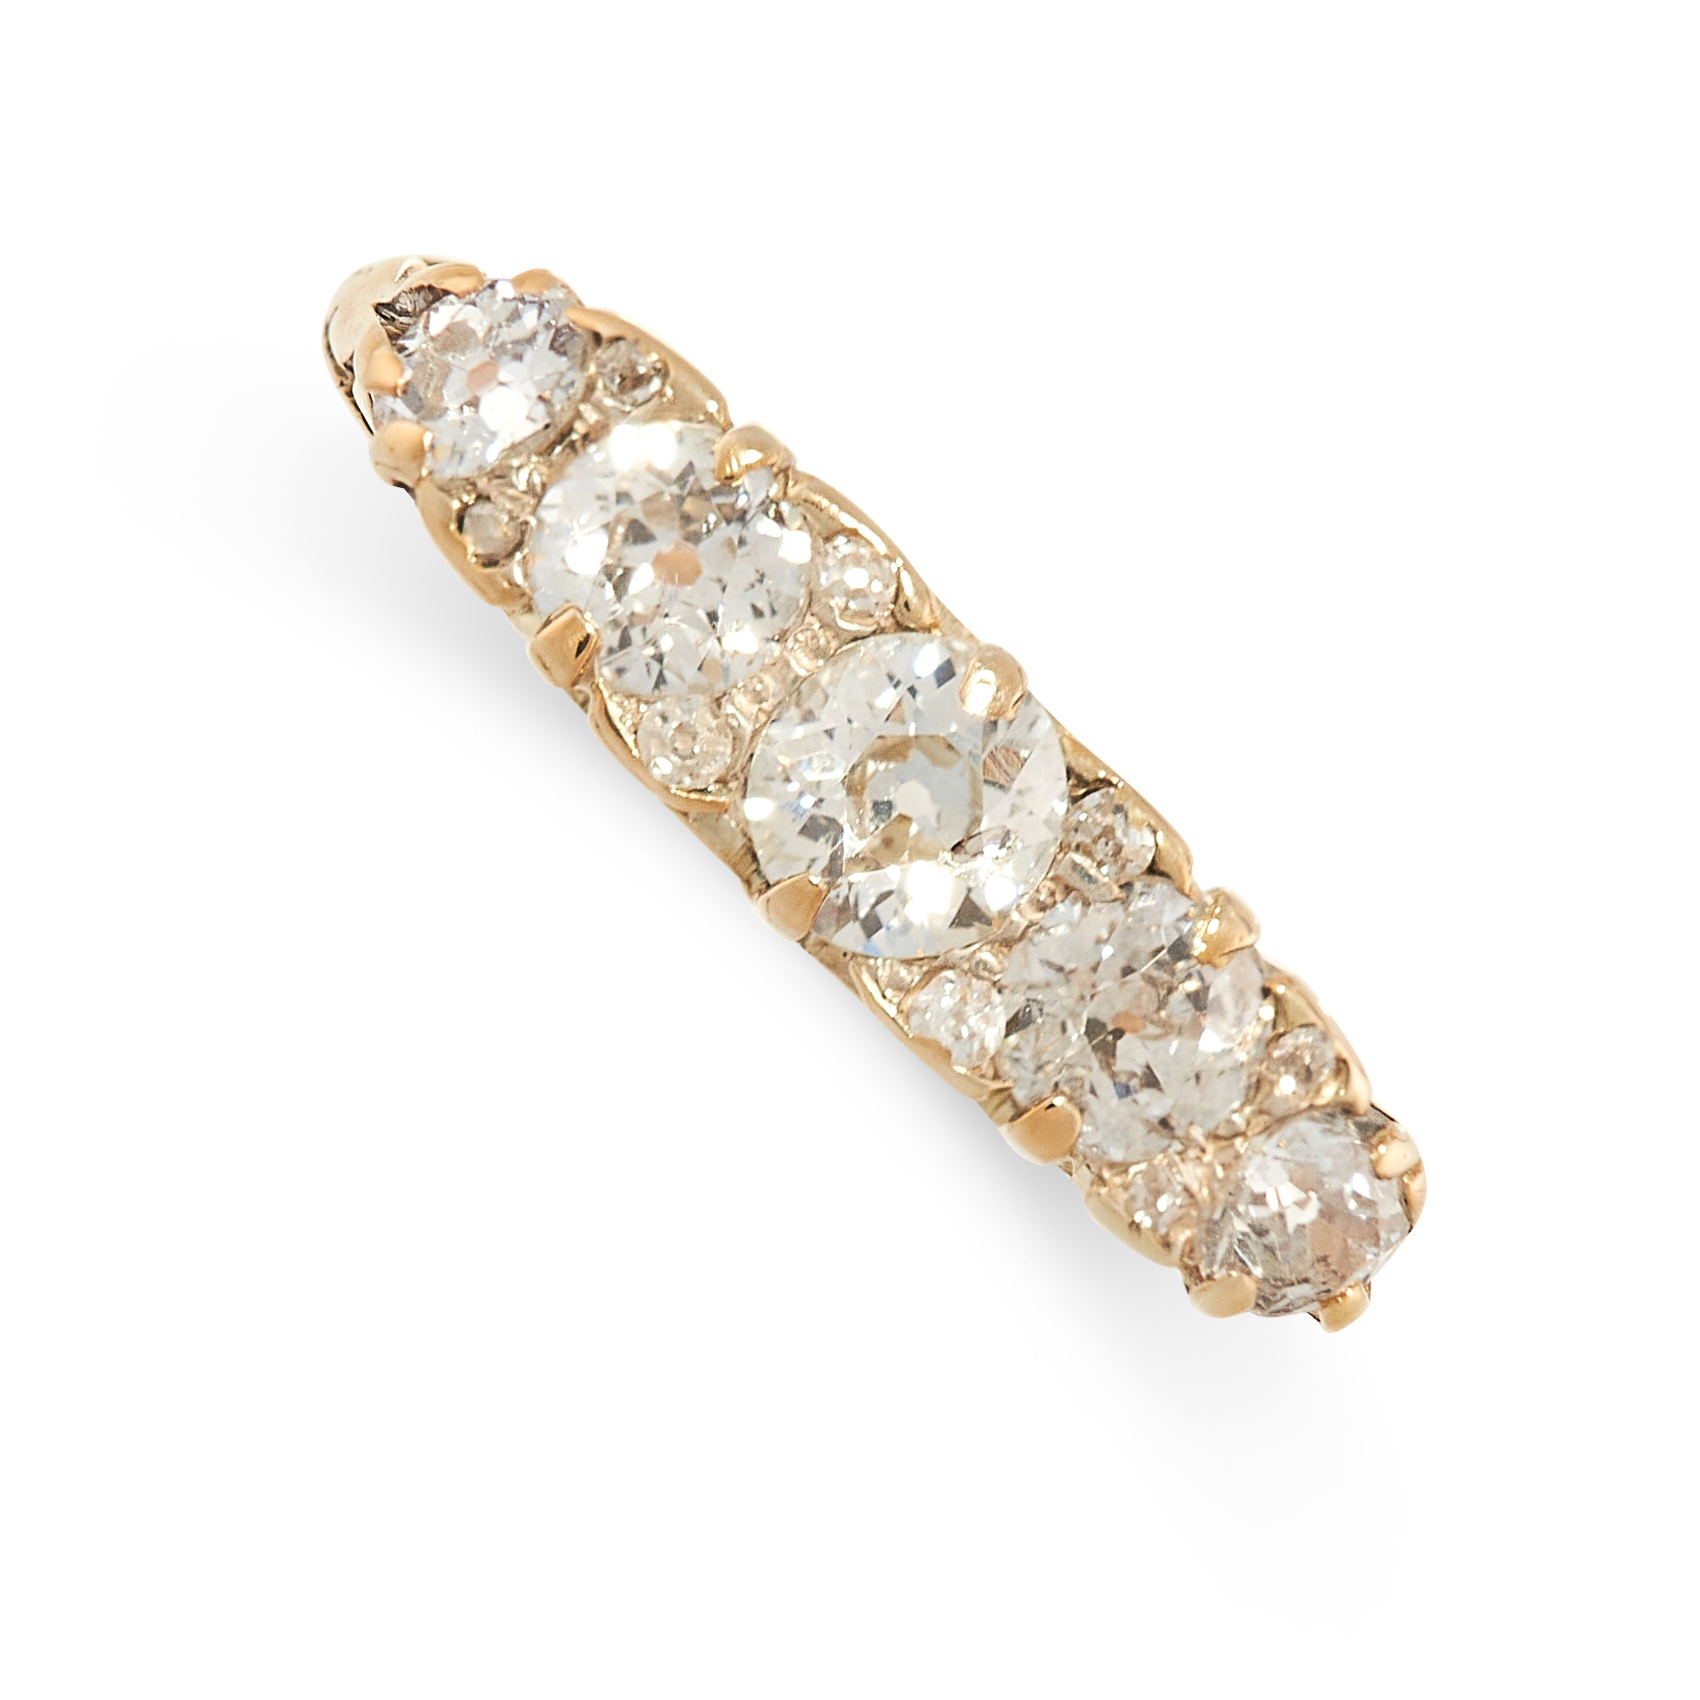 A DIAMOND FIVE STONE RING in 18ct yellow gold, the band set with five graduated old cut diamonds